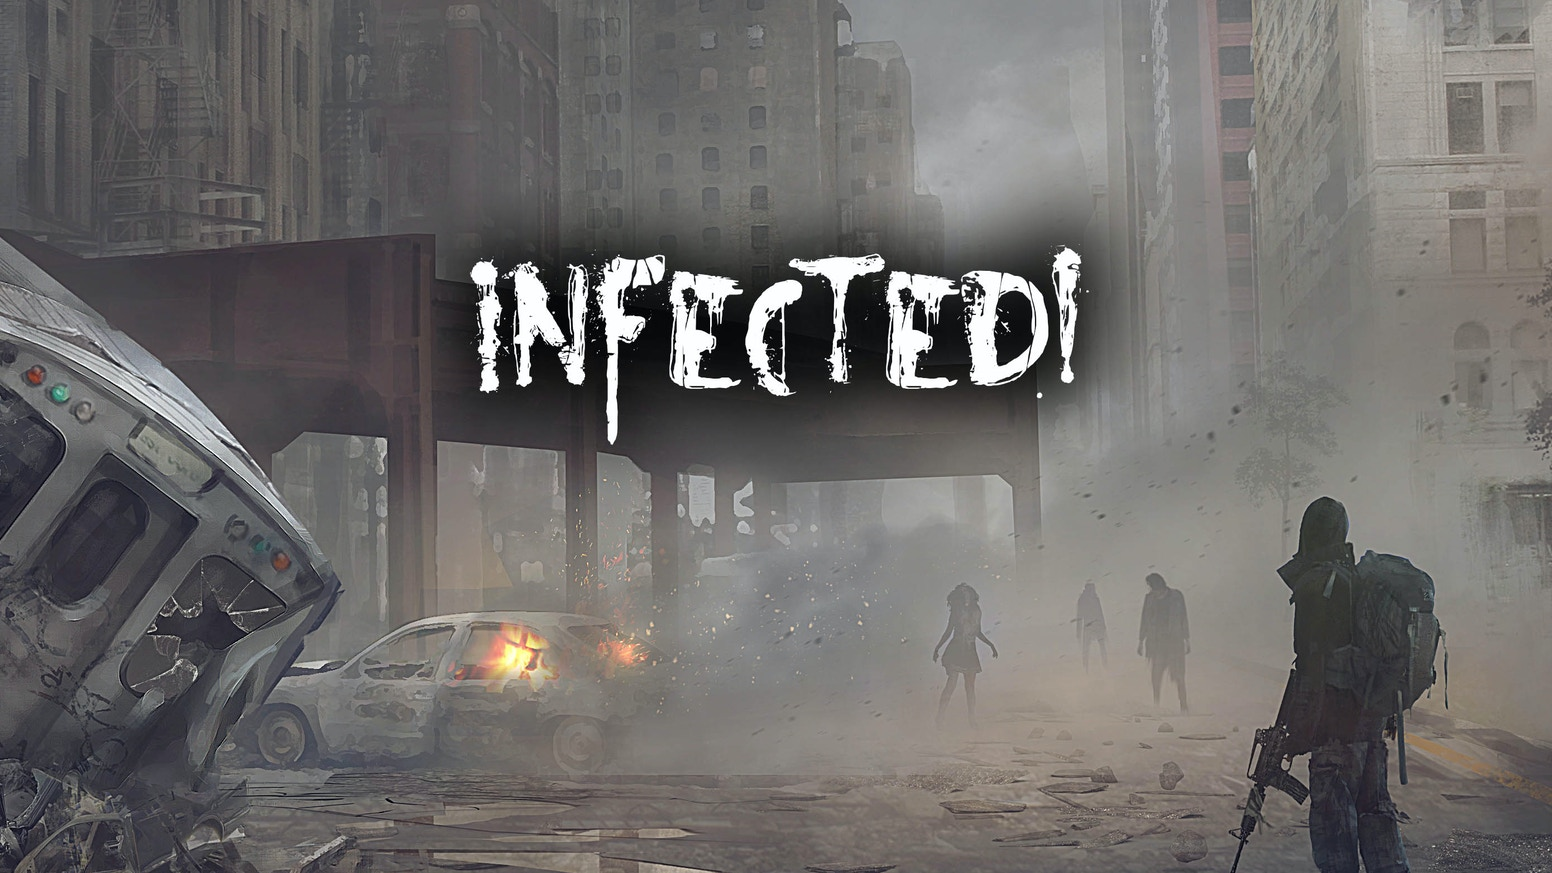 The outbreak is over. Now the real struggle for survival begins - will you try to rebuild society, or tear it down?